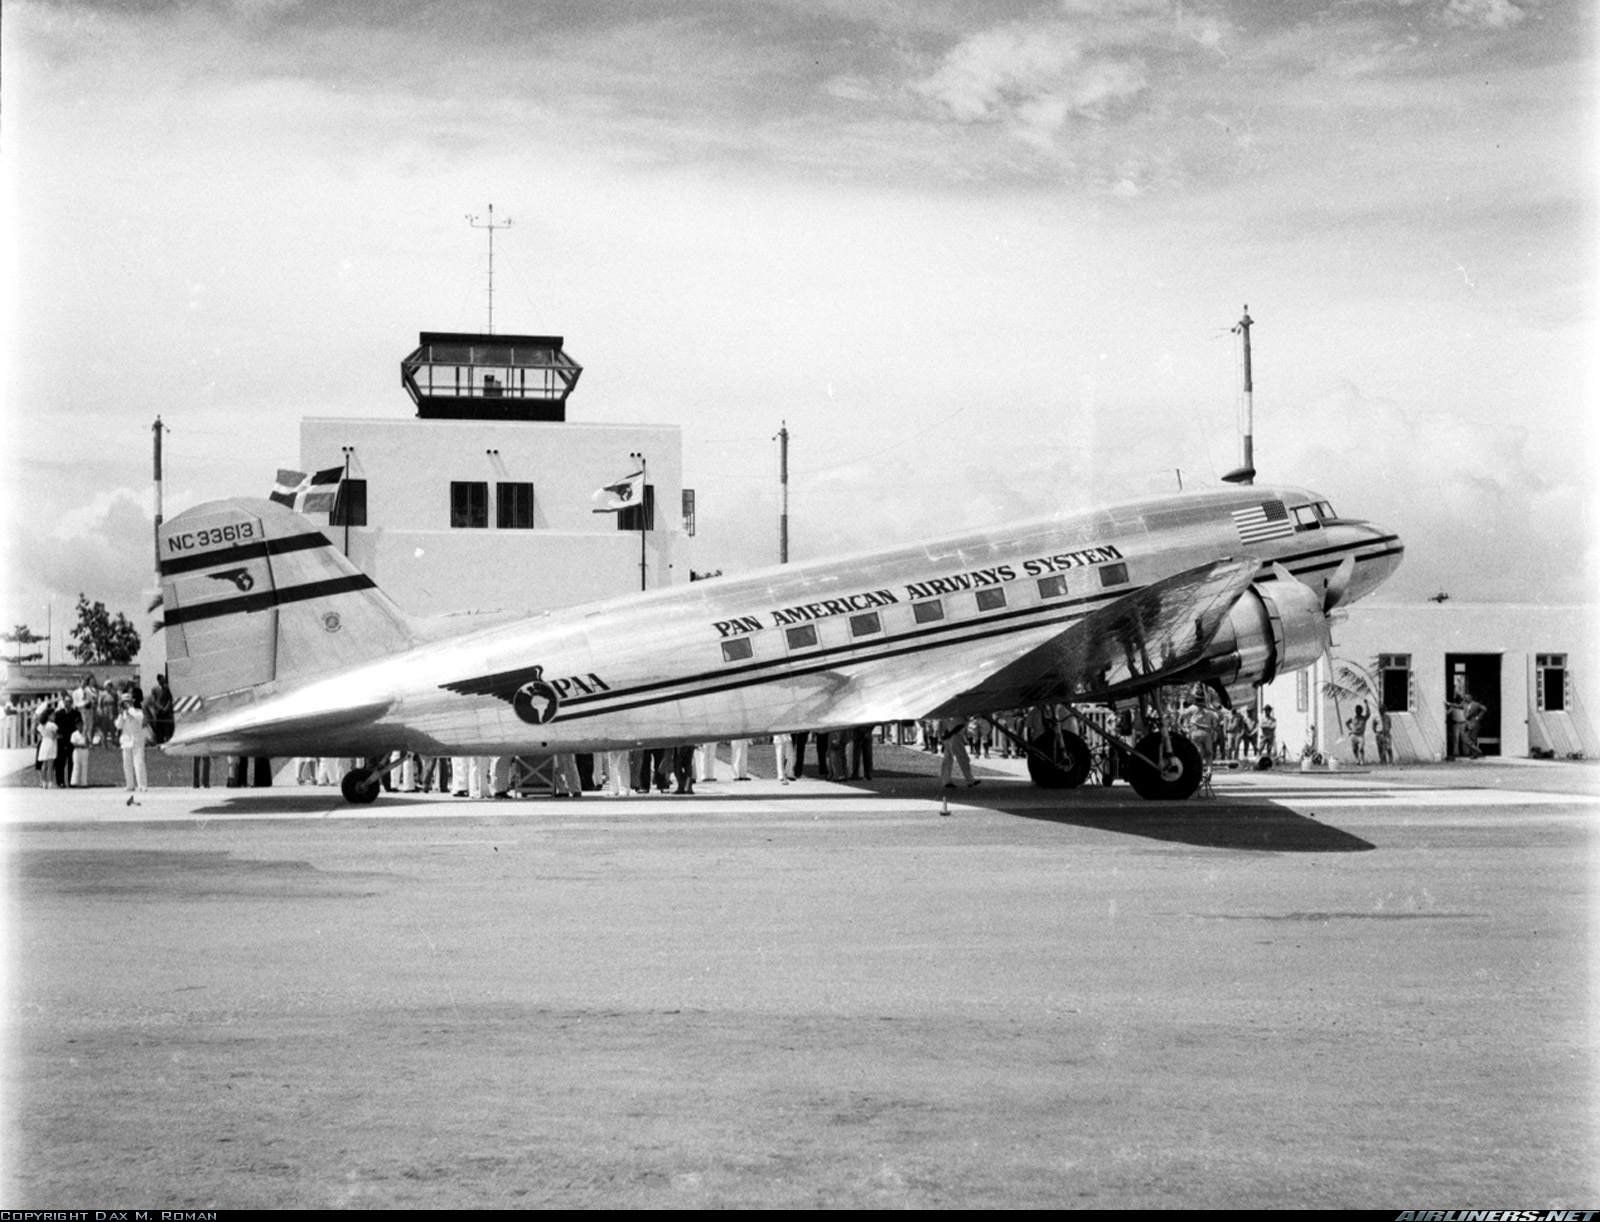 1944 Pan American DC 3 tail number N33613 on the ramp in Santo Domingo, Dominican Republic.